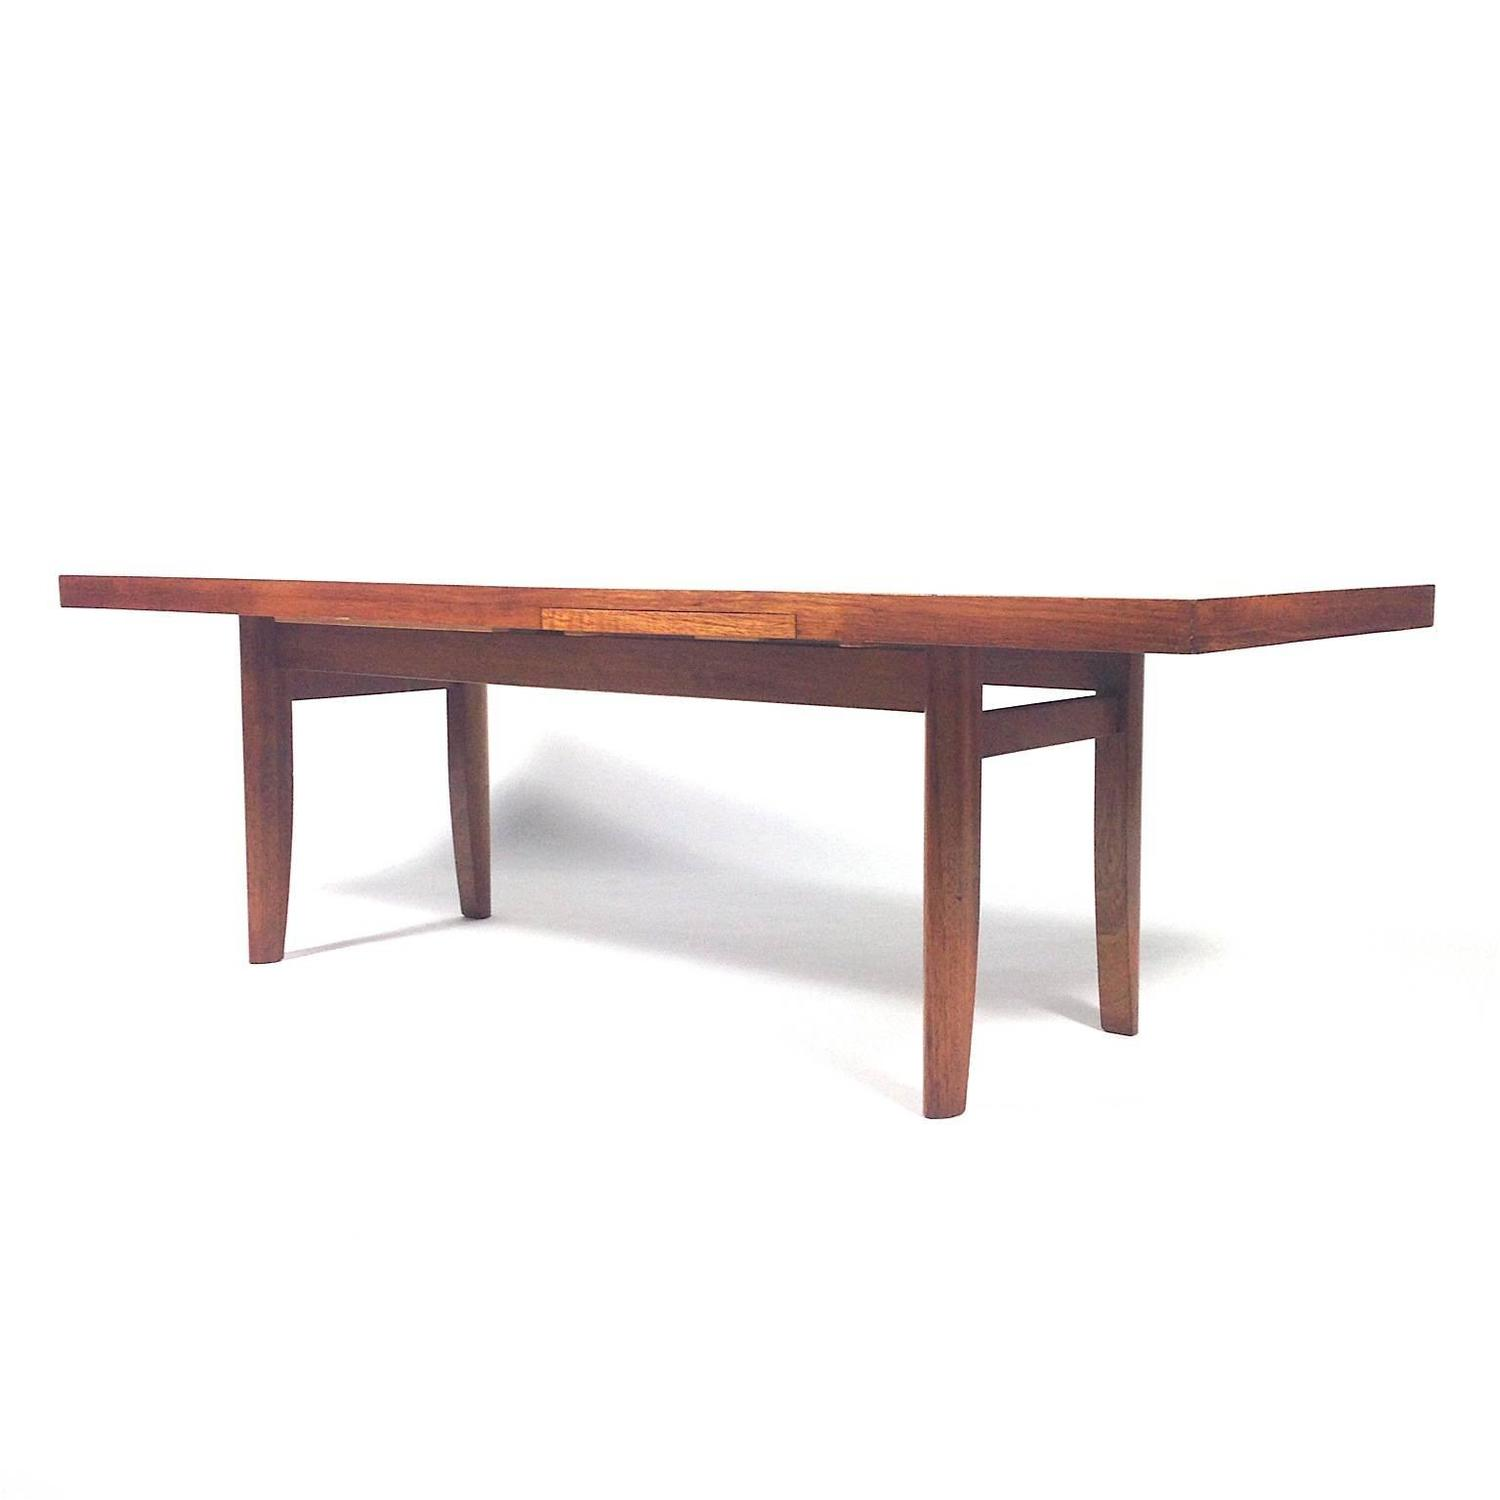 1960s Scandinavian Coffee Table With Extractable White